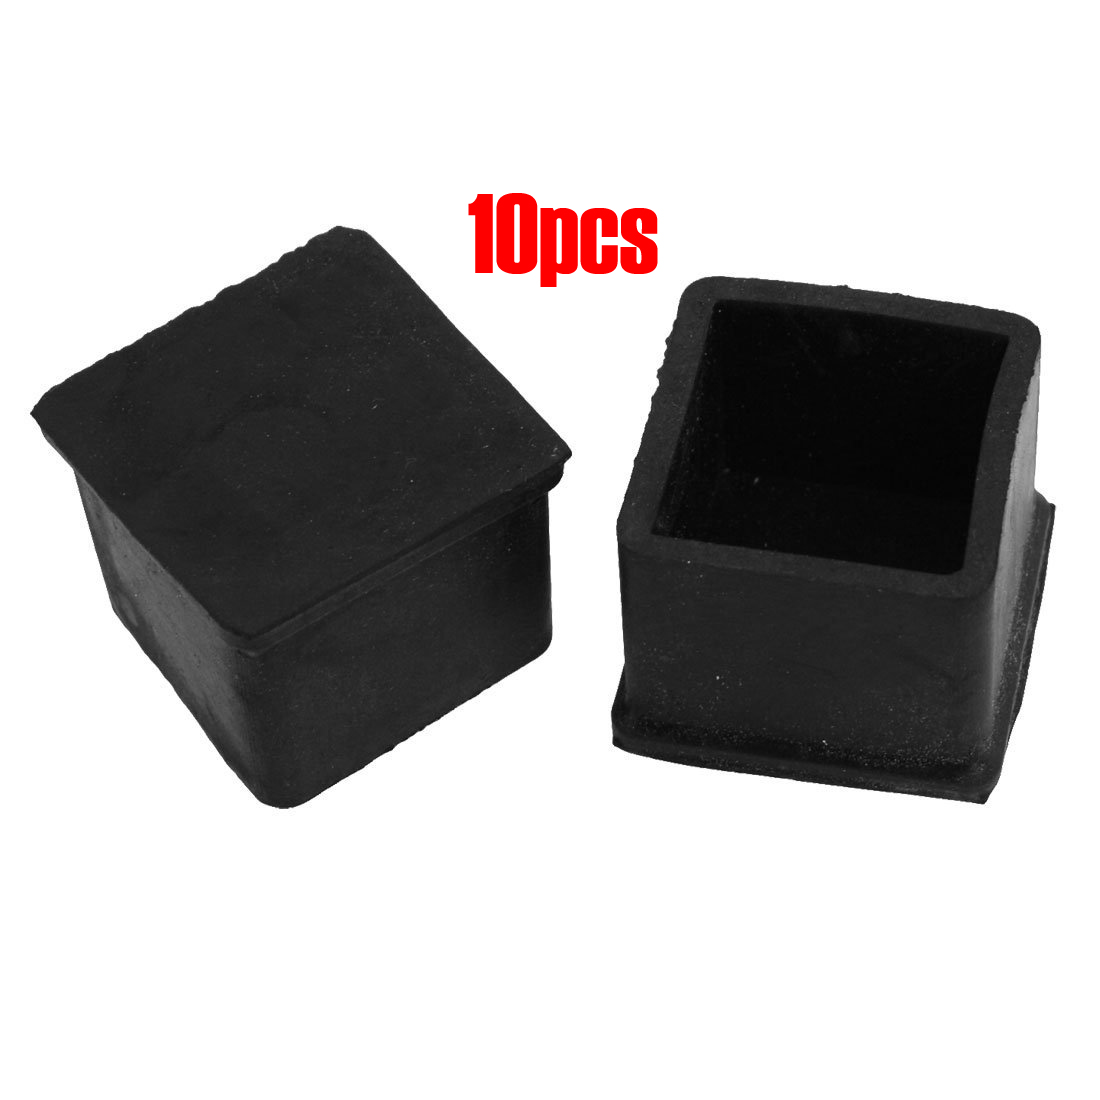 Patio Chair Feet Covers: 10 Pcs Black 30mm X 30mm Furniture Foot Protector Square